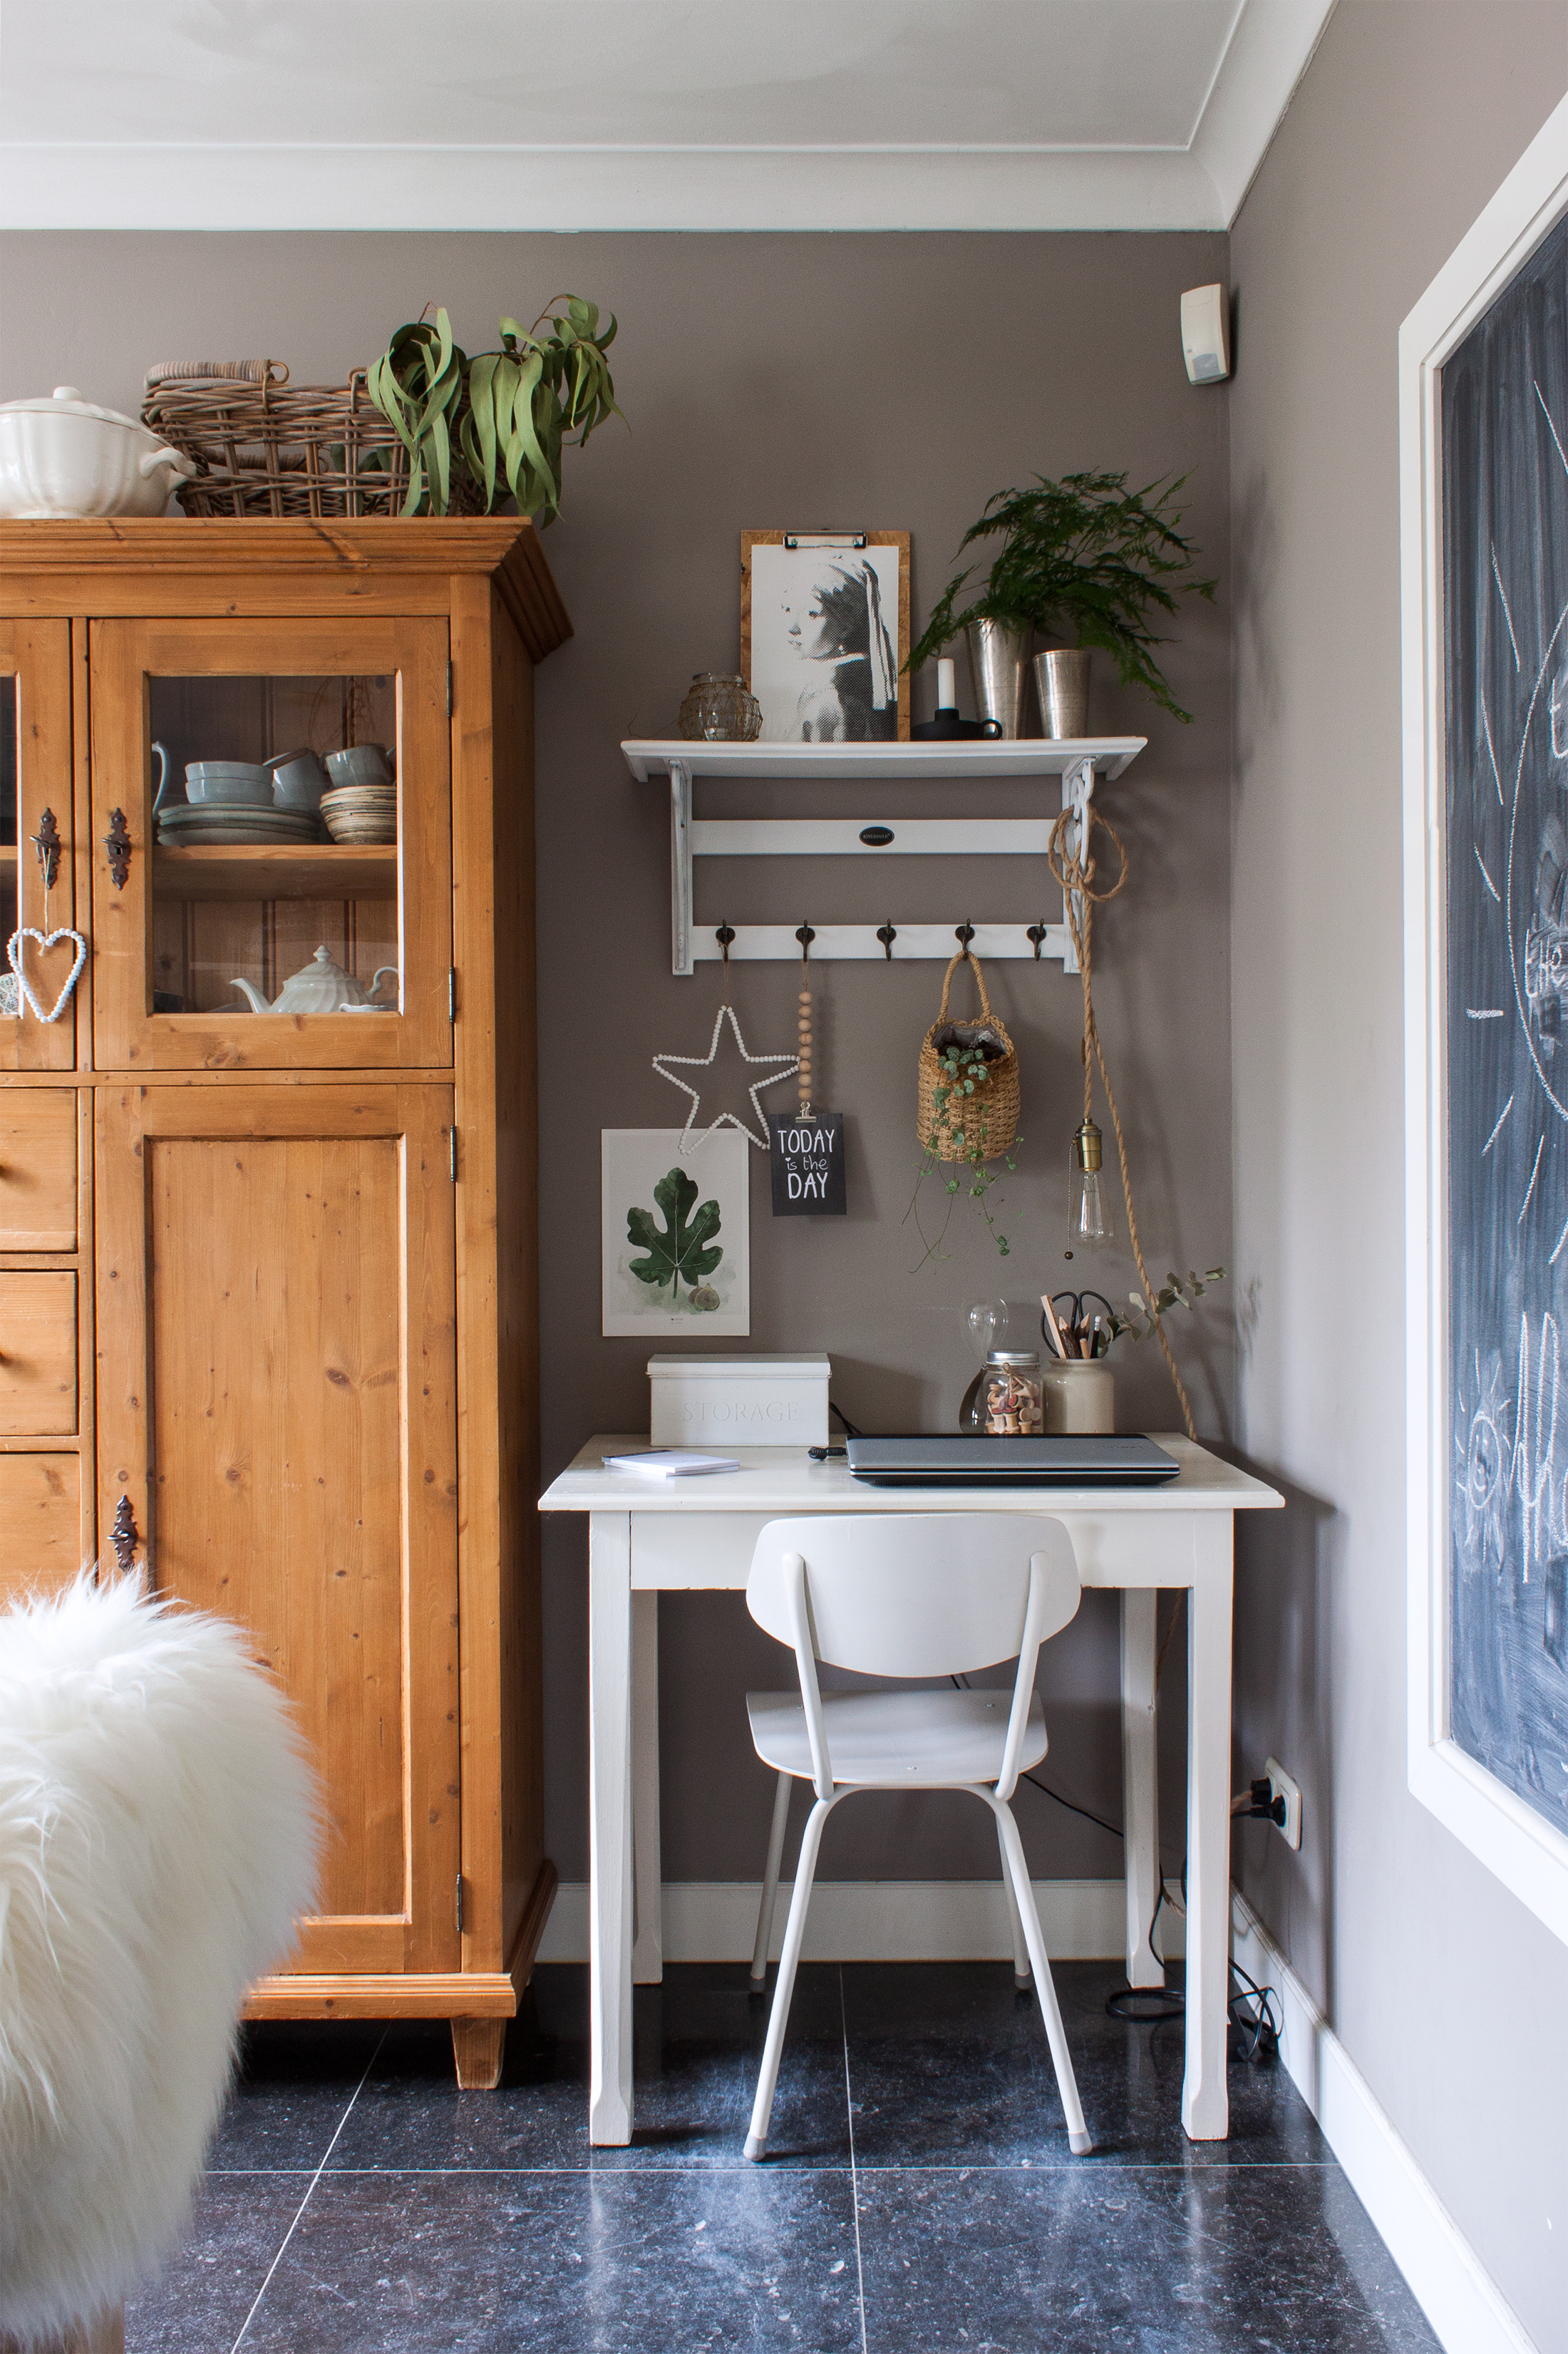 House Tour: A Modern Dutch Home with a Cozy Country Feel | Apartment